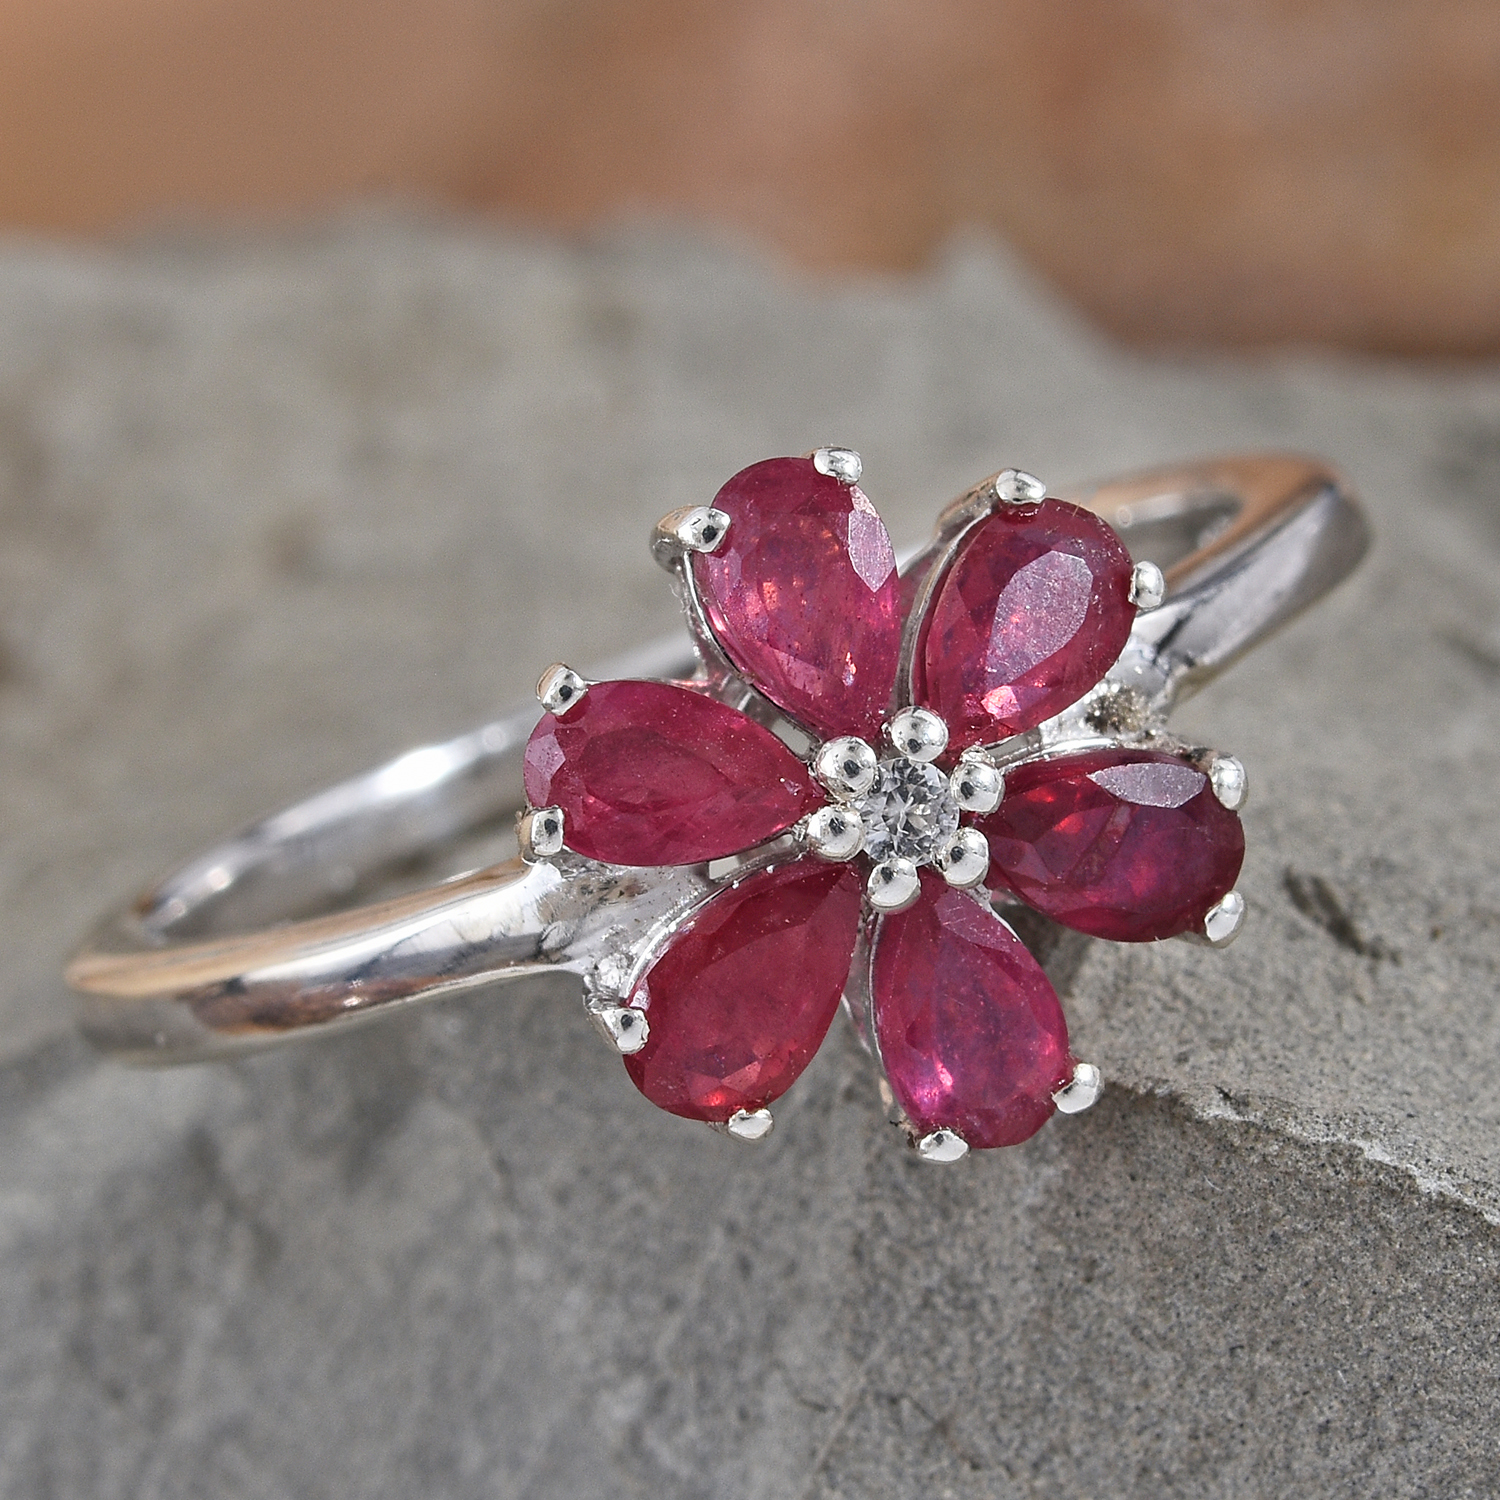 Floral ruby ring daintily resting on granite display.